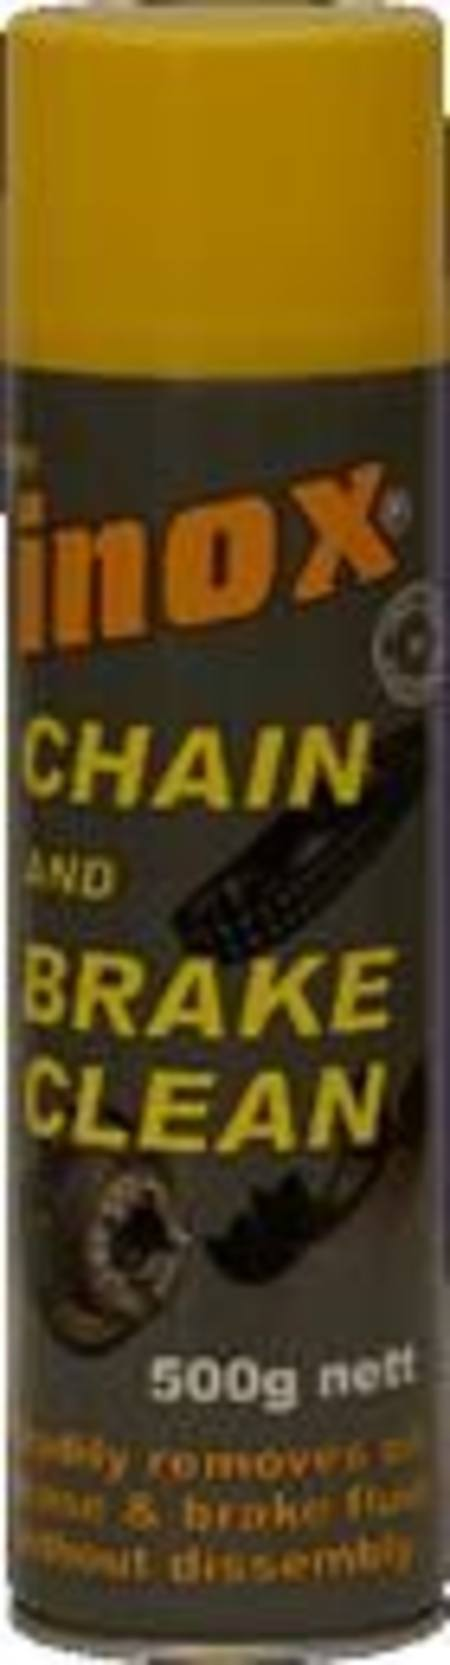 Buy INOX MX11 CHAIN AND BRAKE CLEAN 500gm AEROSOL in NZ.